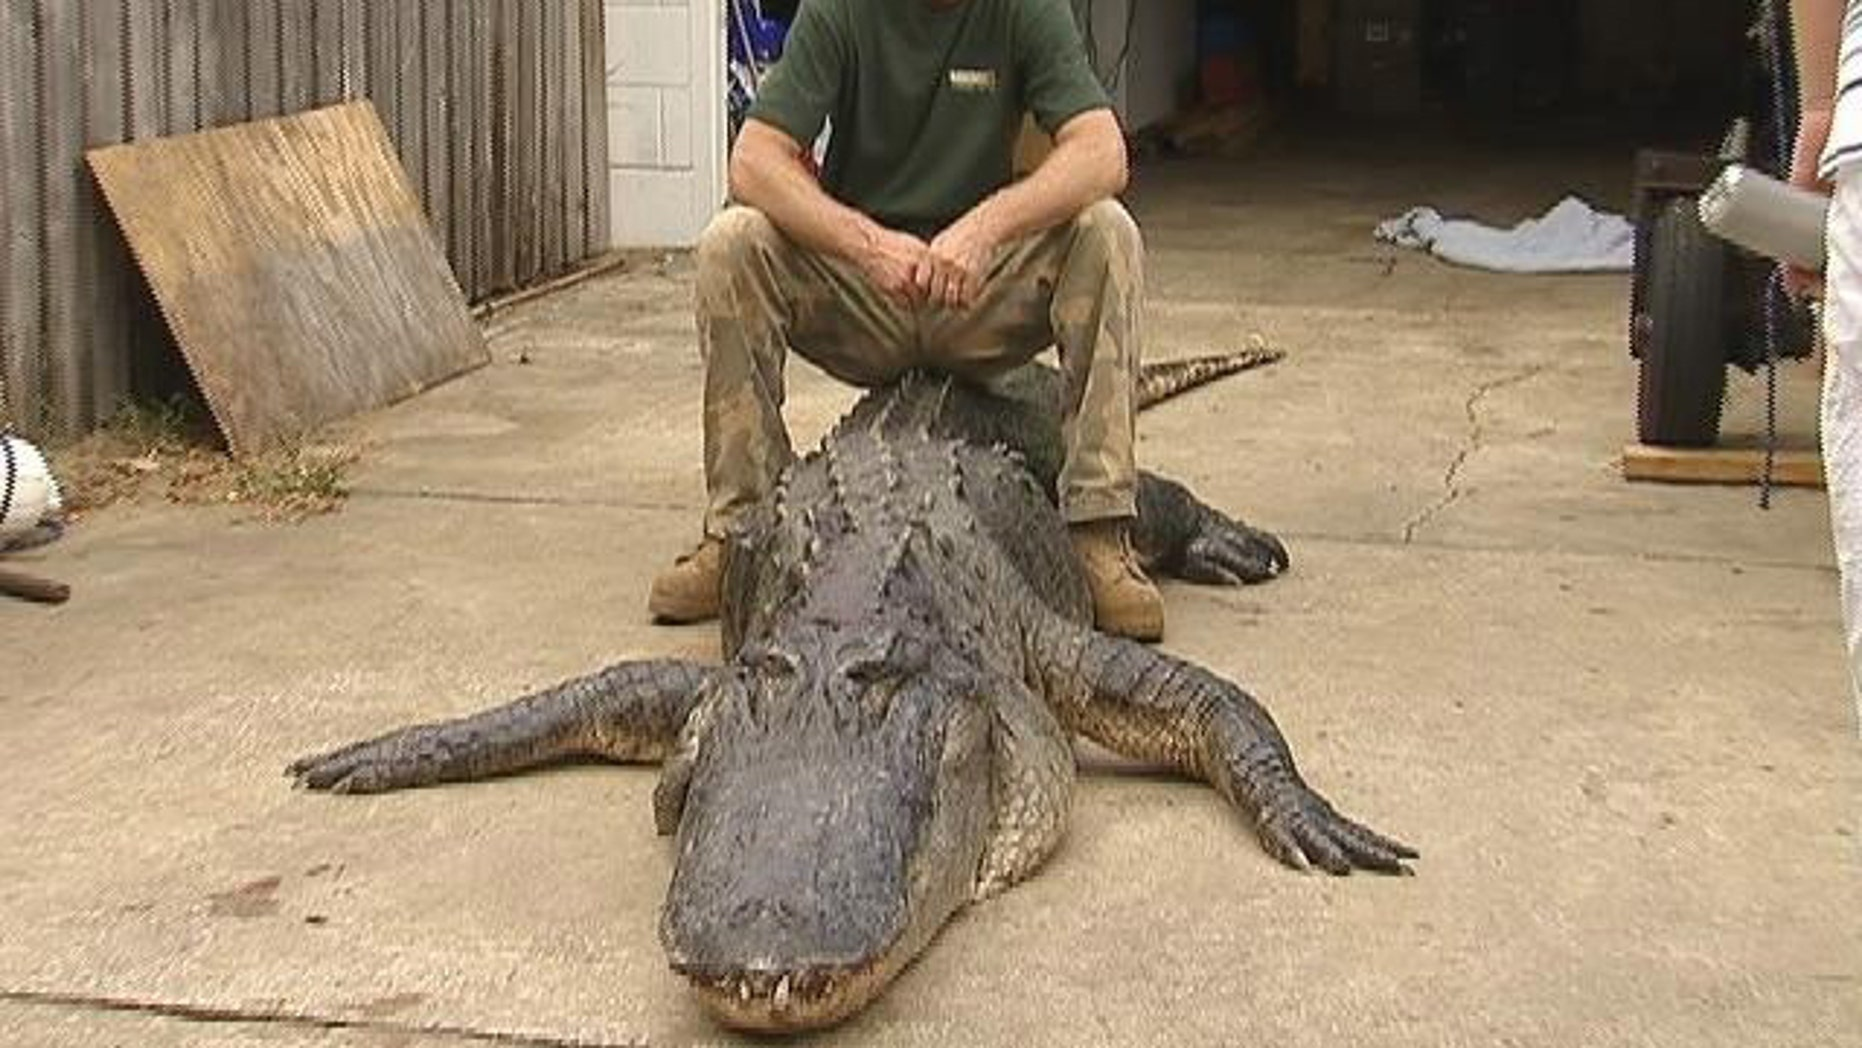 Tres Ammerman caught the mammoth beast just west of Melbourne, Fla., in the last hour of the last day of alligator hunting season, MyFoxOrlando.com reports.